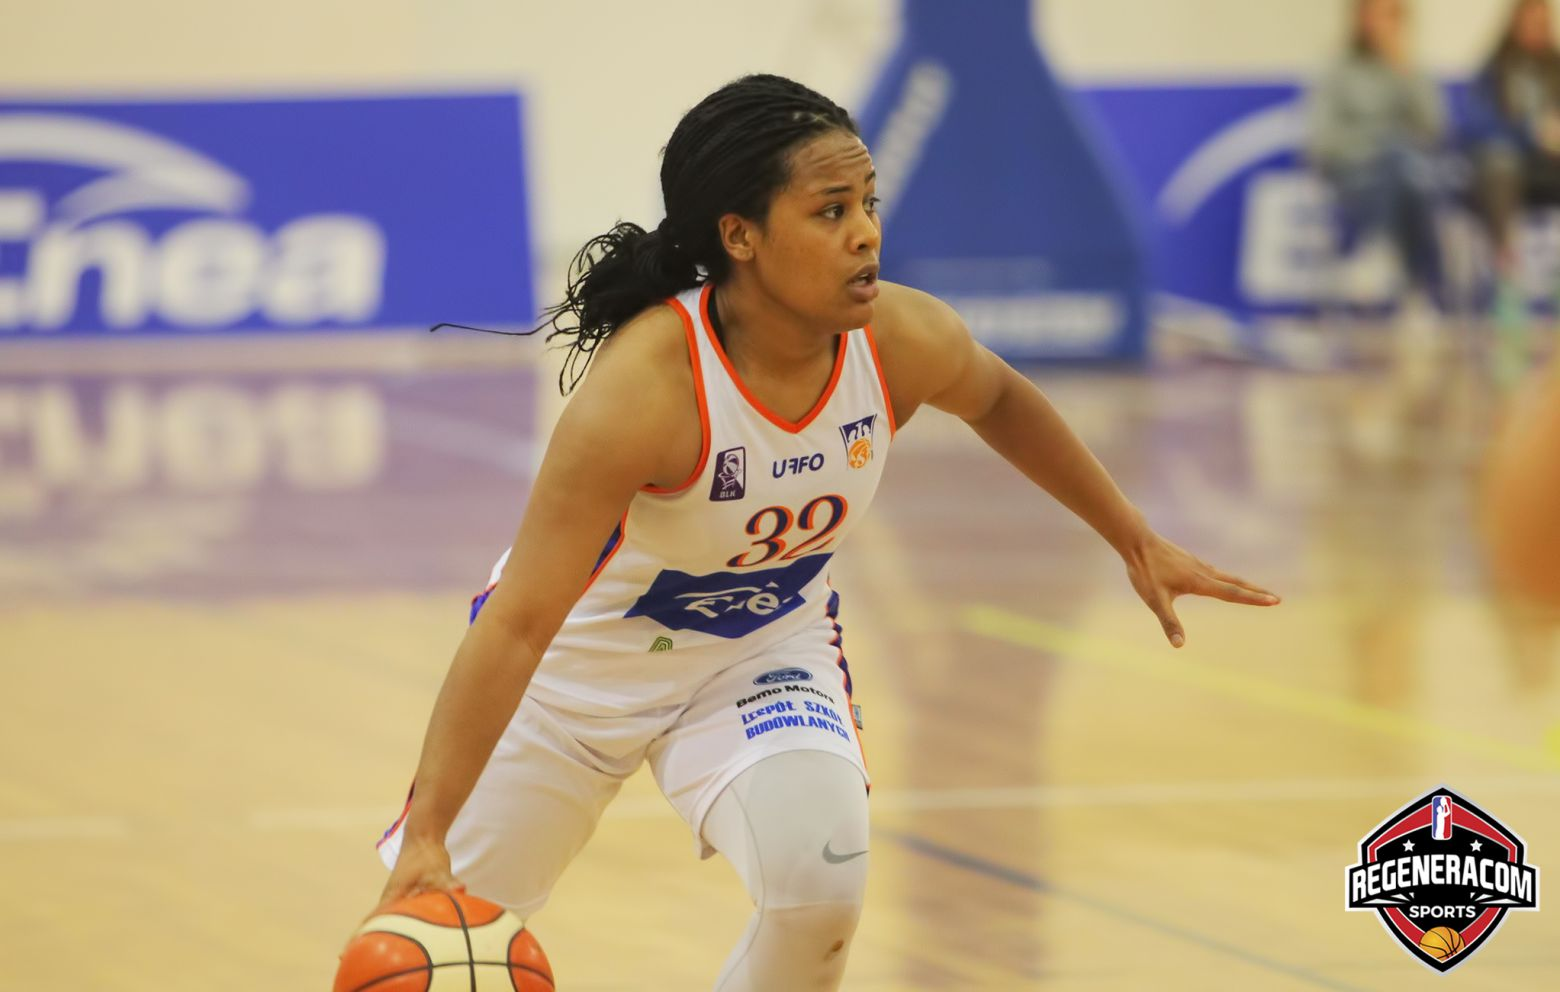 JAZMINE DAVIS has signed in Poland with Wizdew Lodz